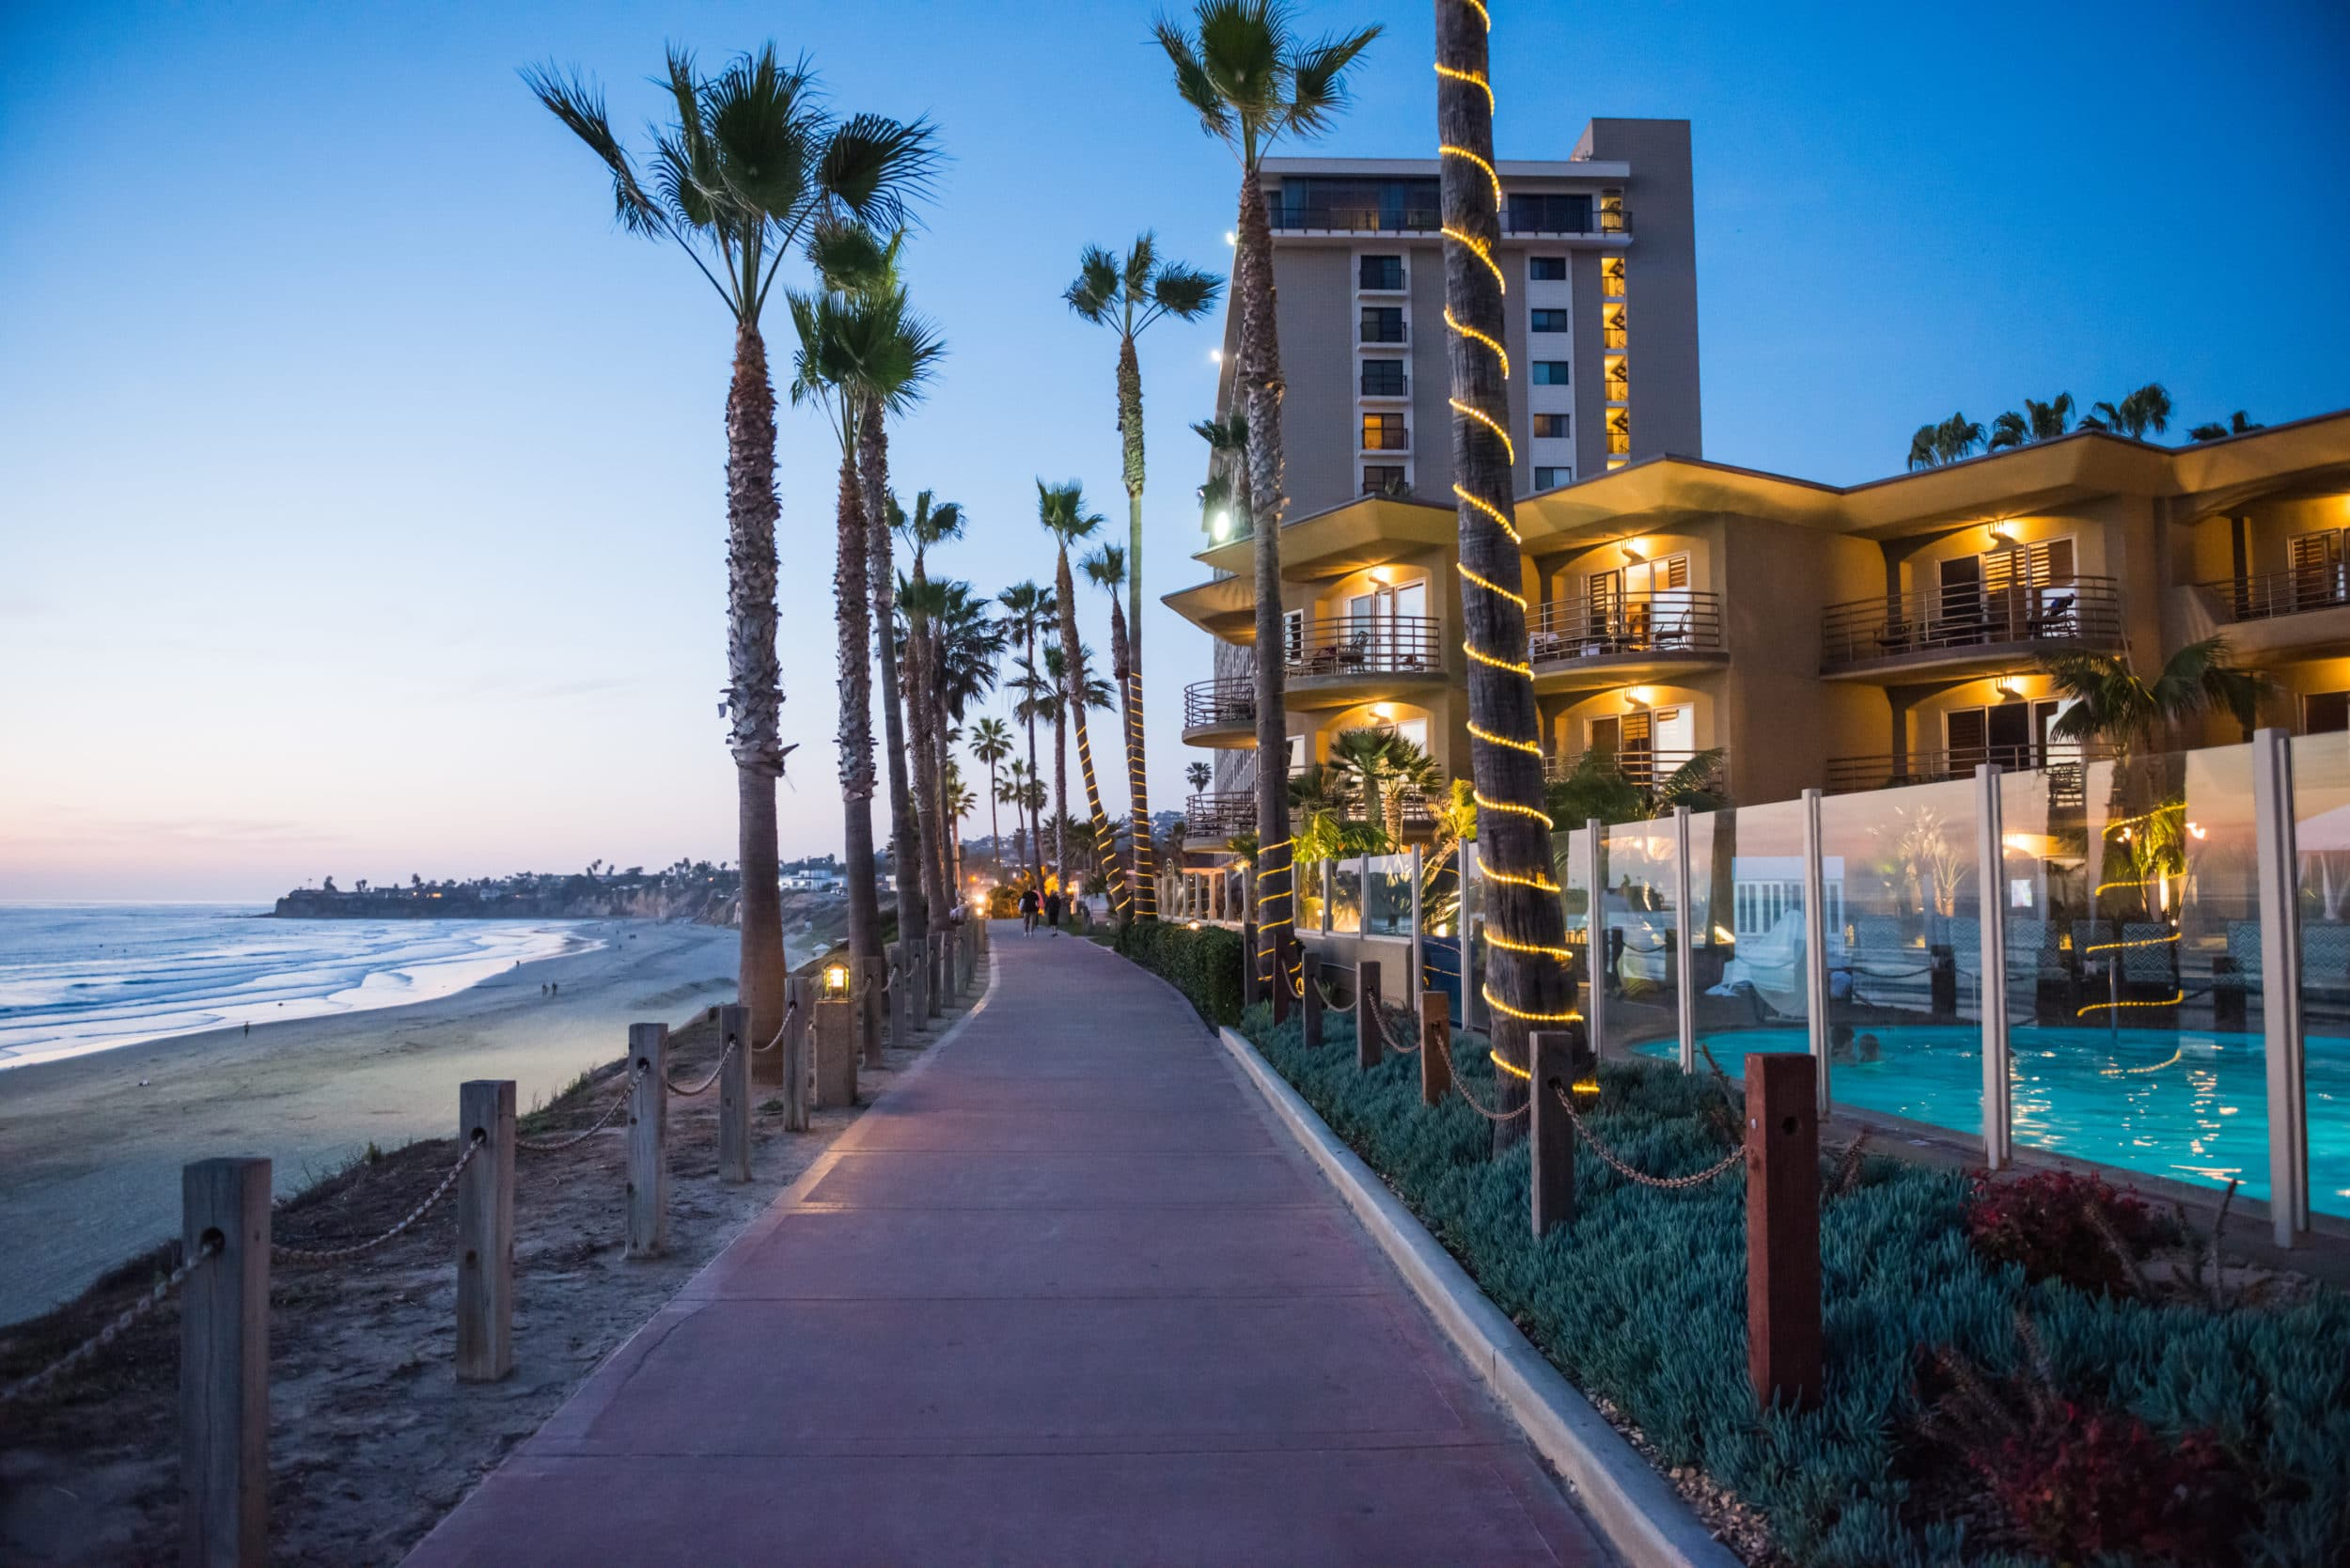 Pacific Terrace Hotel is located in the Pacific Beach neighborhood of San Diego